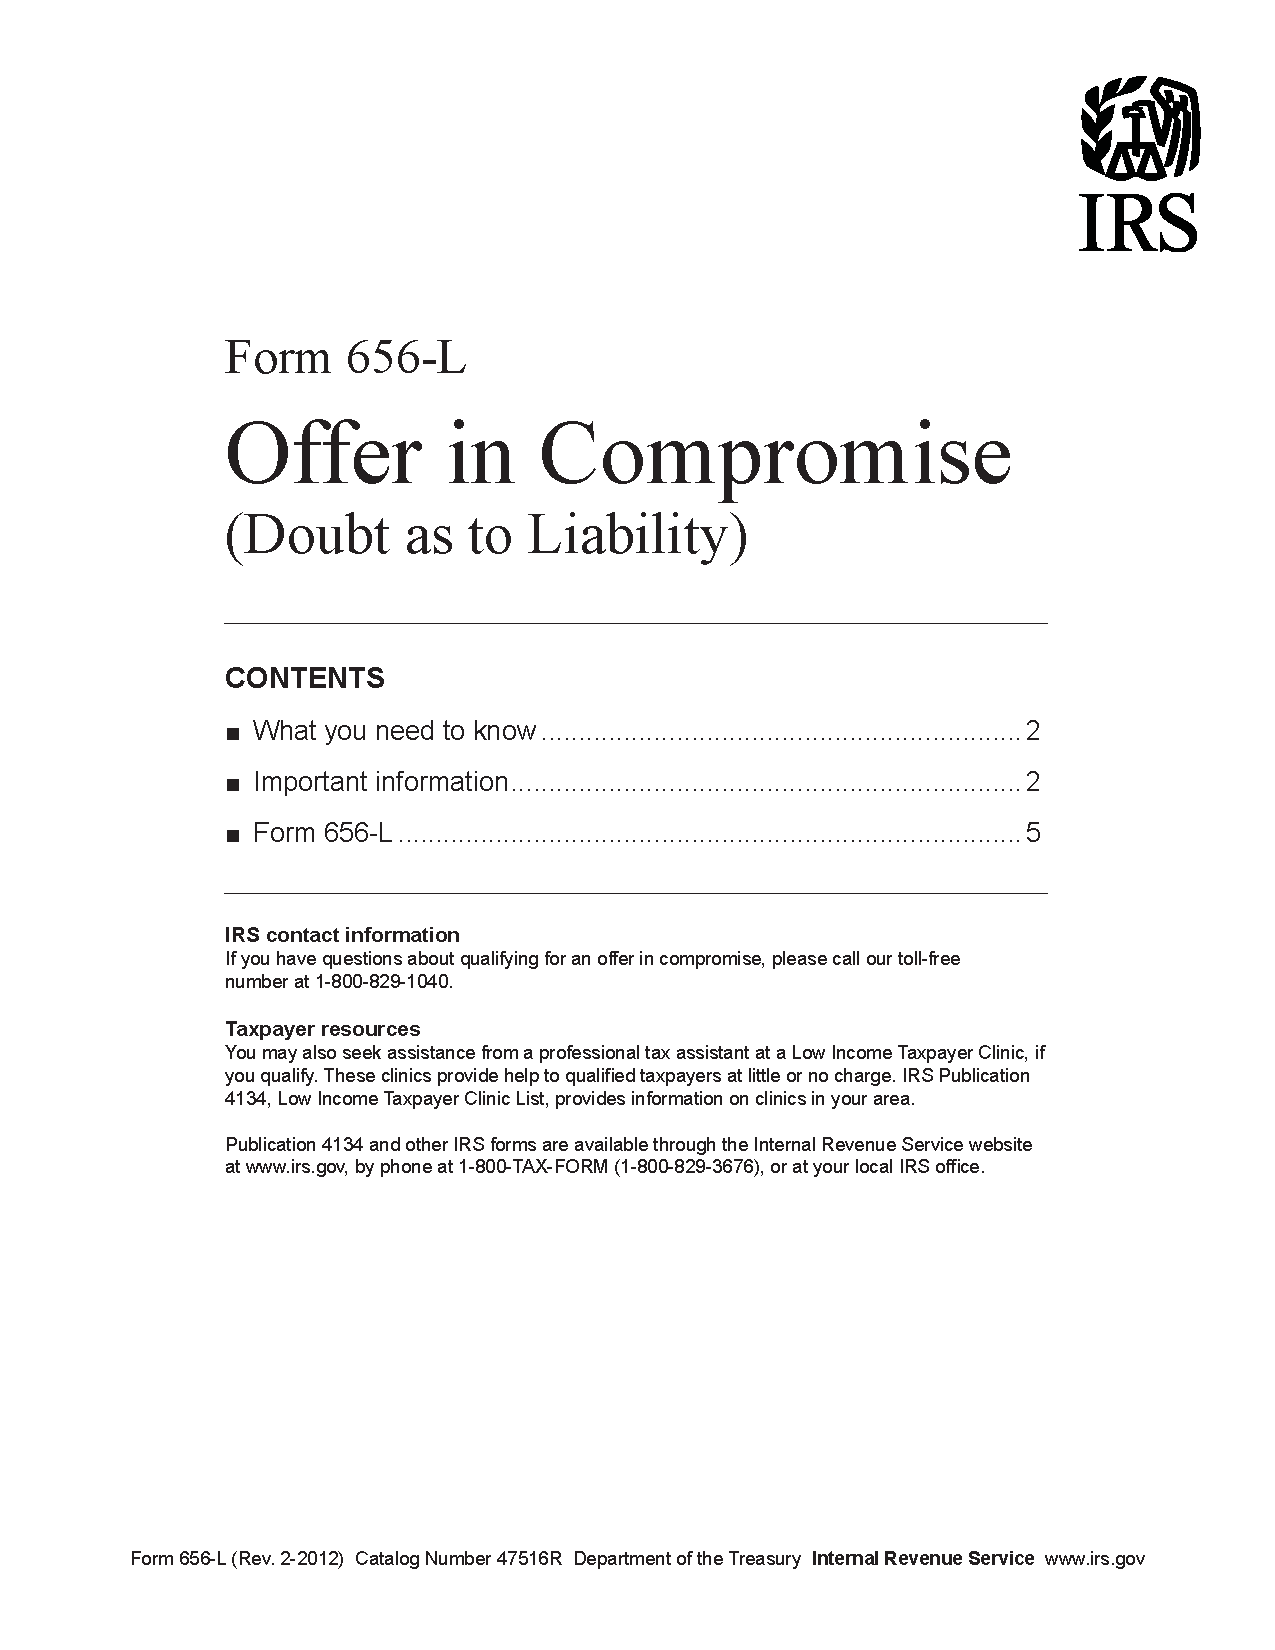 Form 656-L Offer in Compromise (Doubt as to Liability)